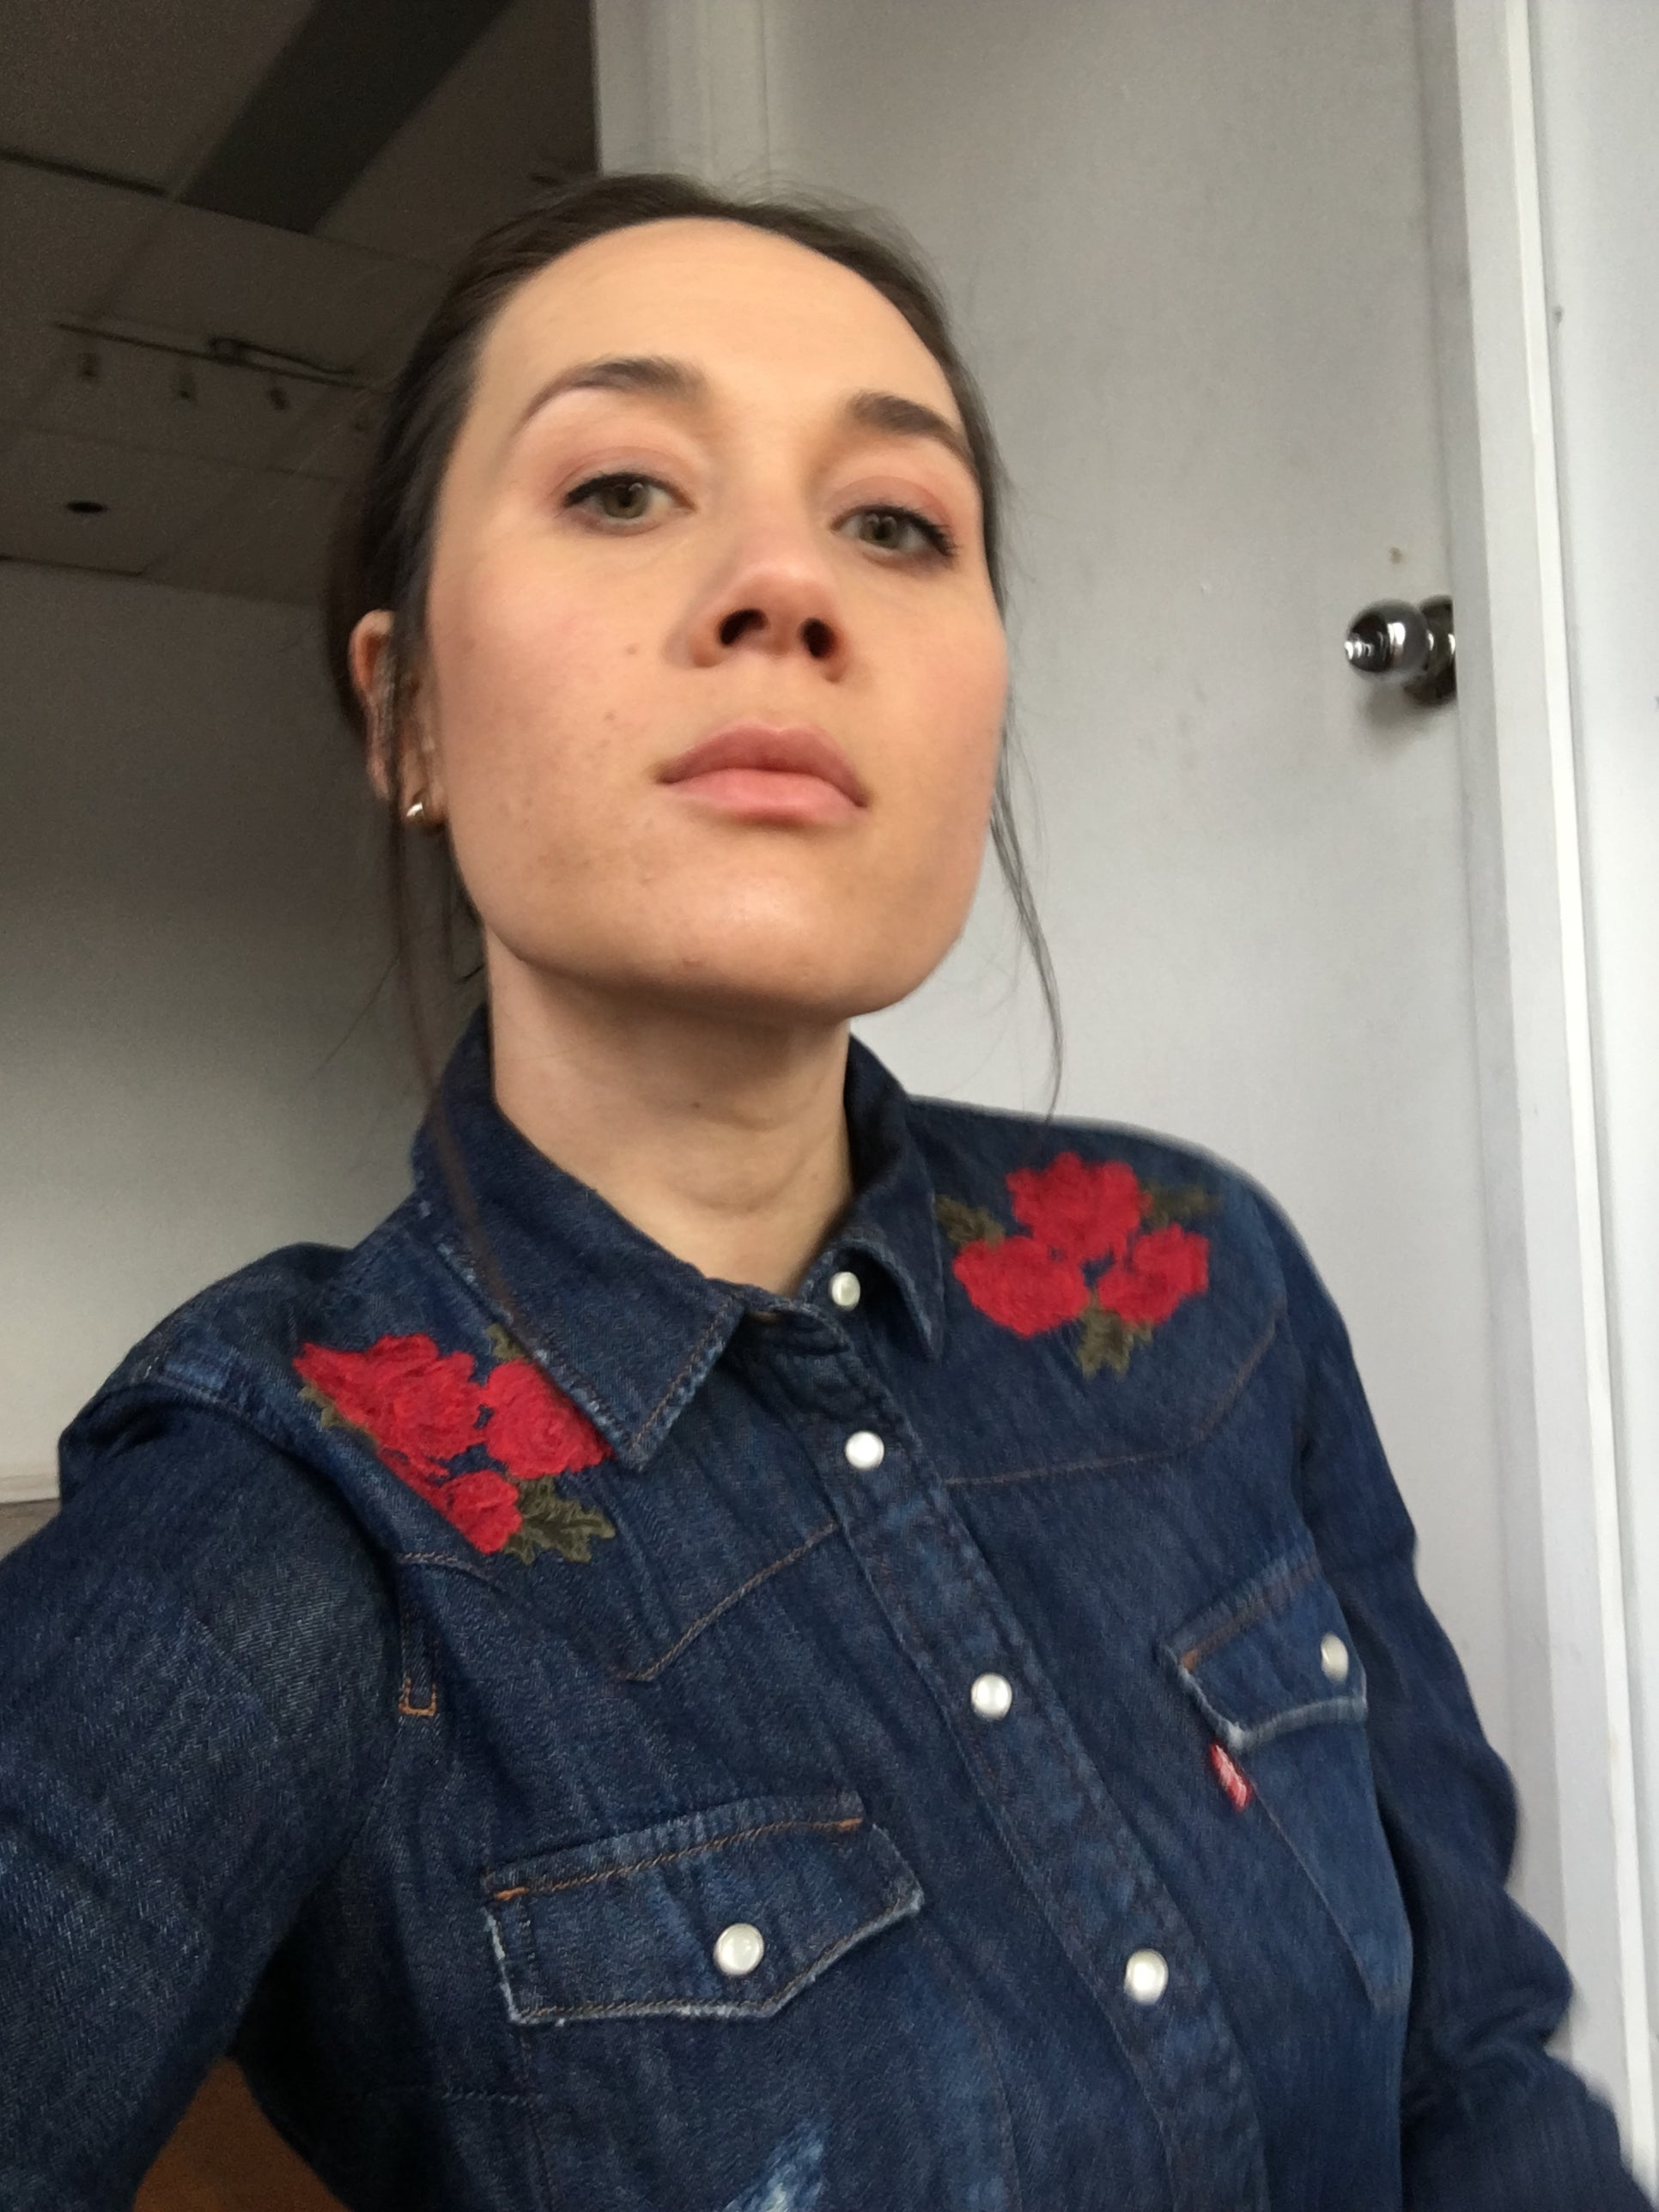 Haiku Hands: Levi's blue denim shirt with red flowers